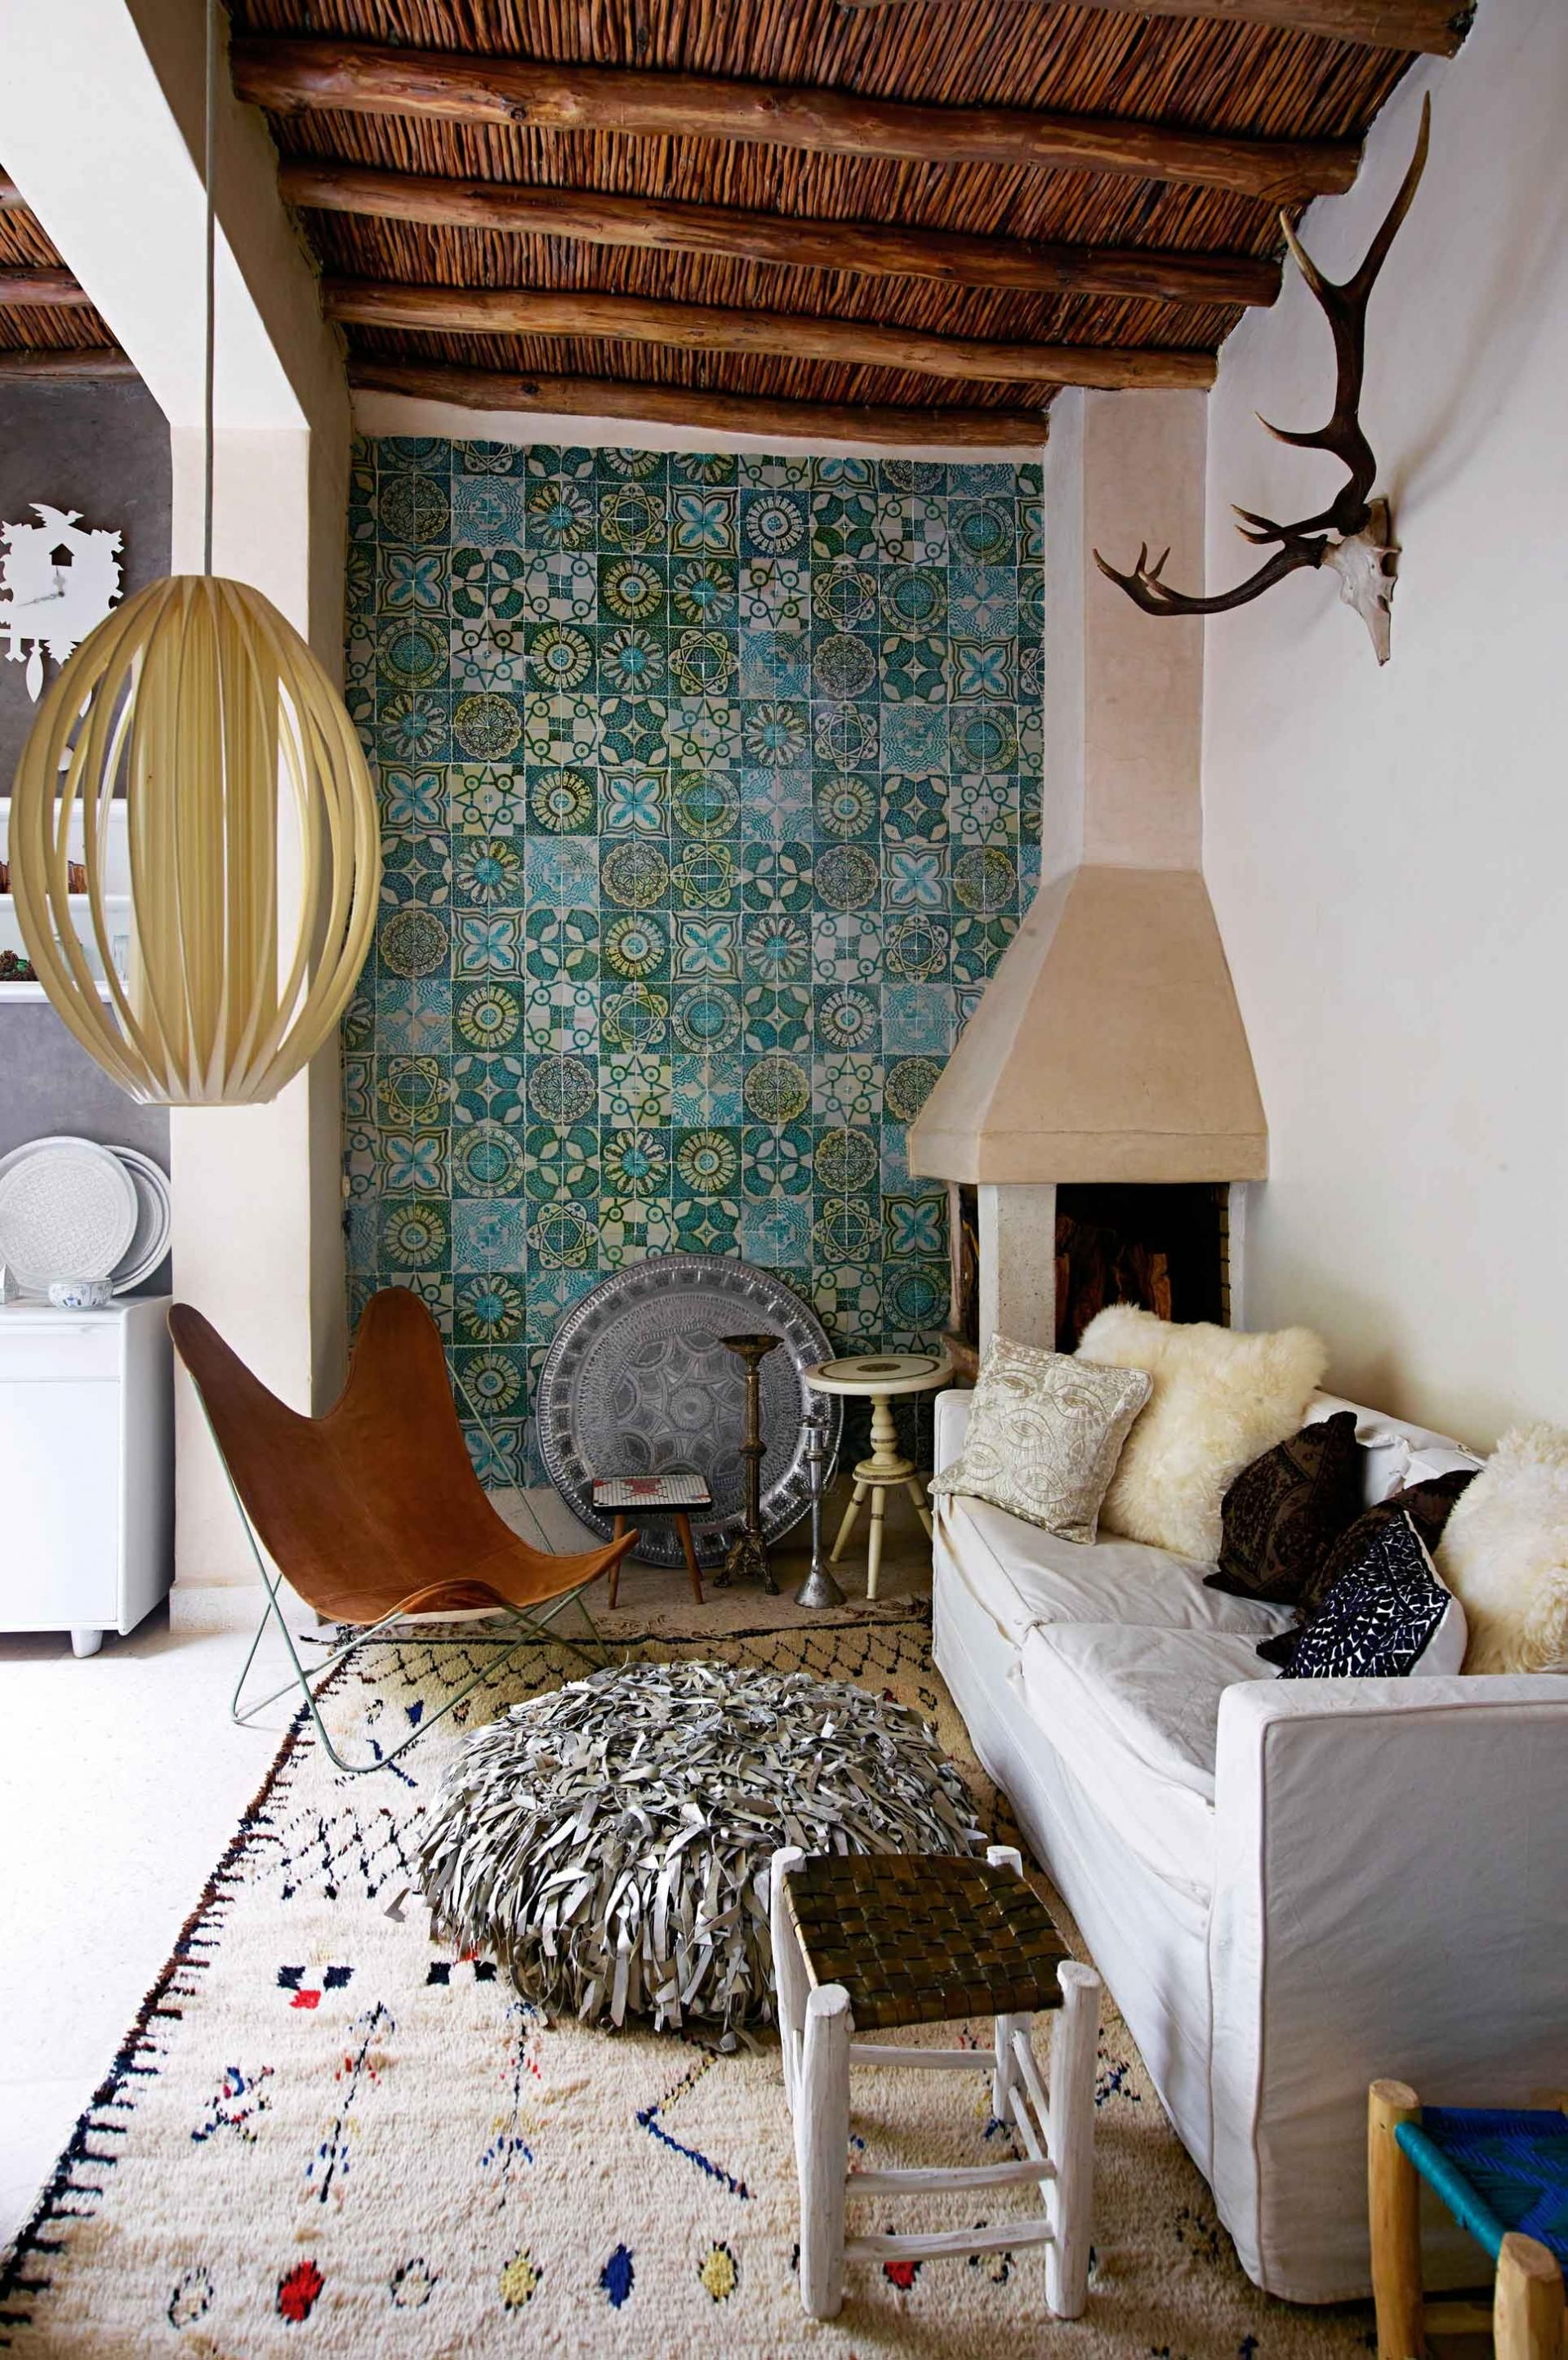 Decorative Wall Tiles For Living Room A Beautiful Home With Moroccan Theme Showing Nice Shadows 10